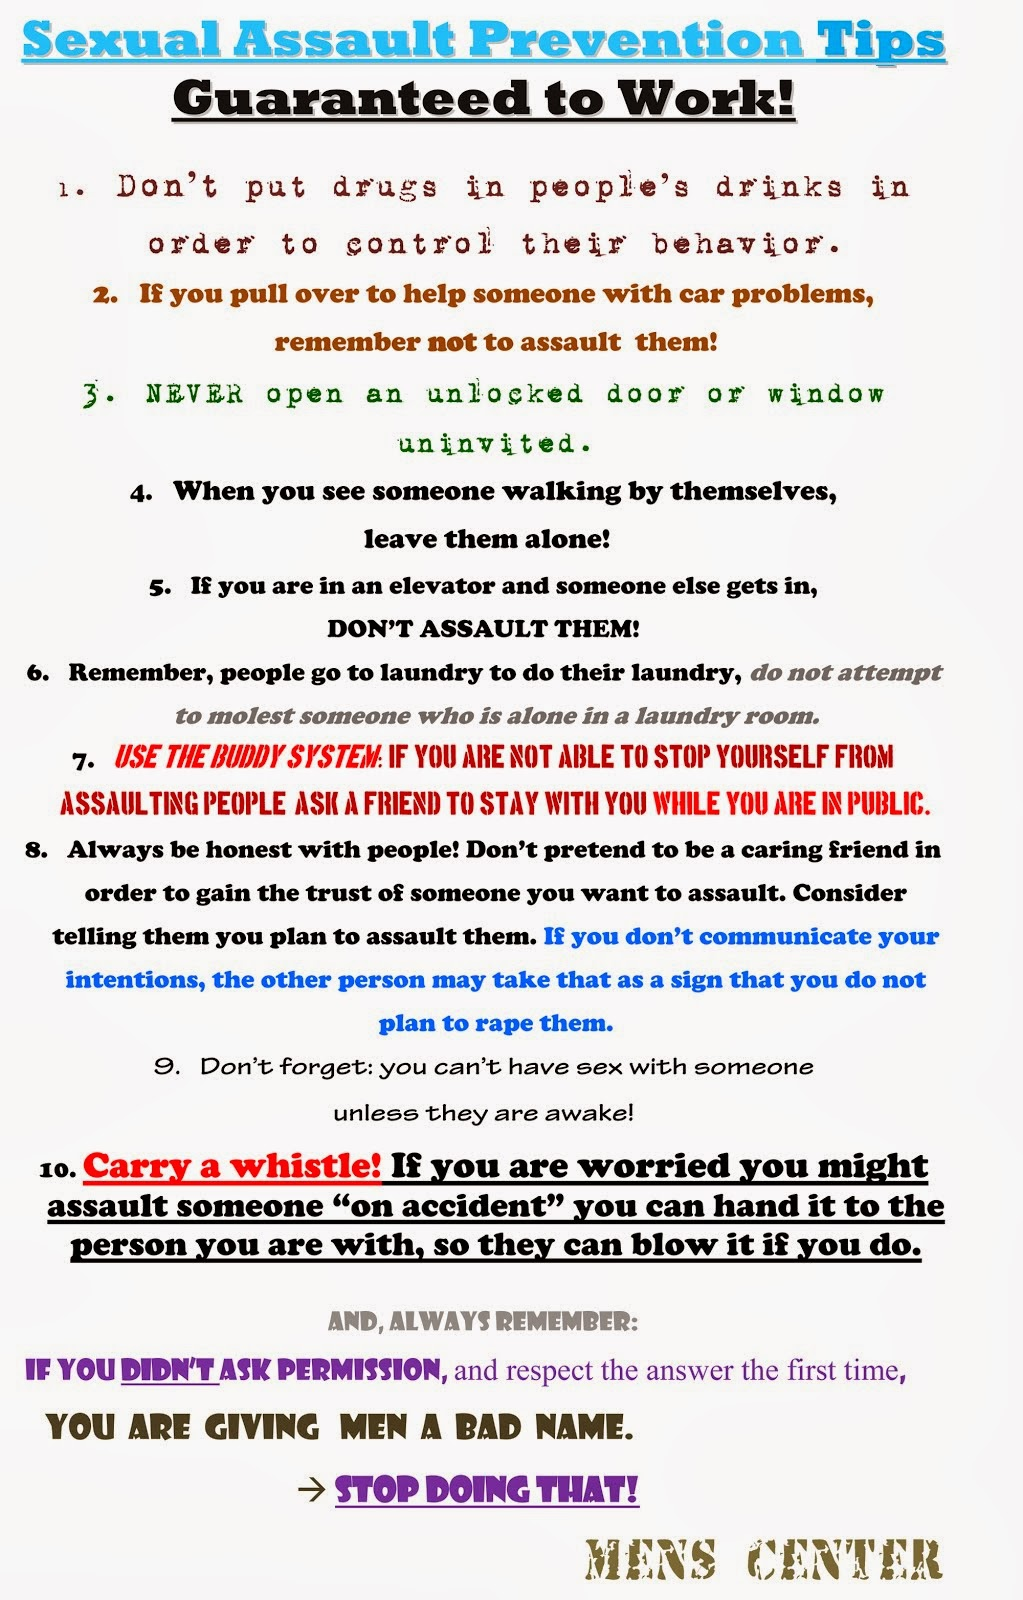 Sexual Assault Prevention Tips